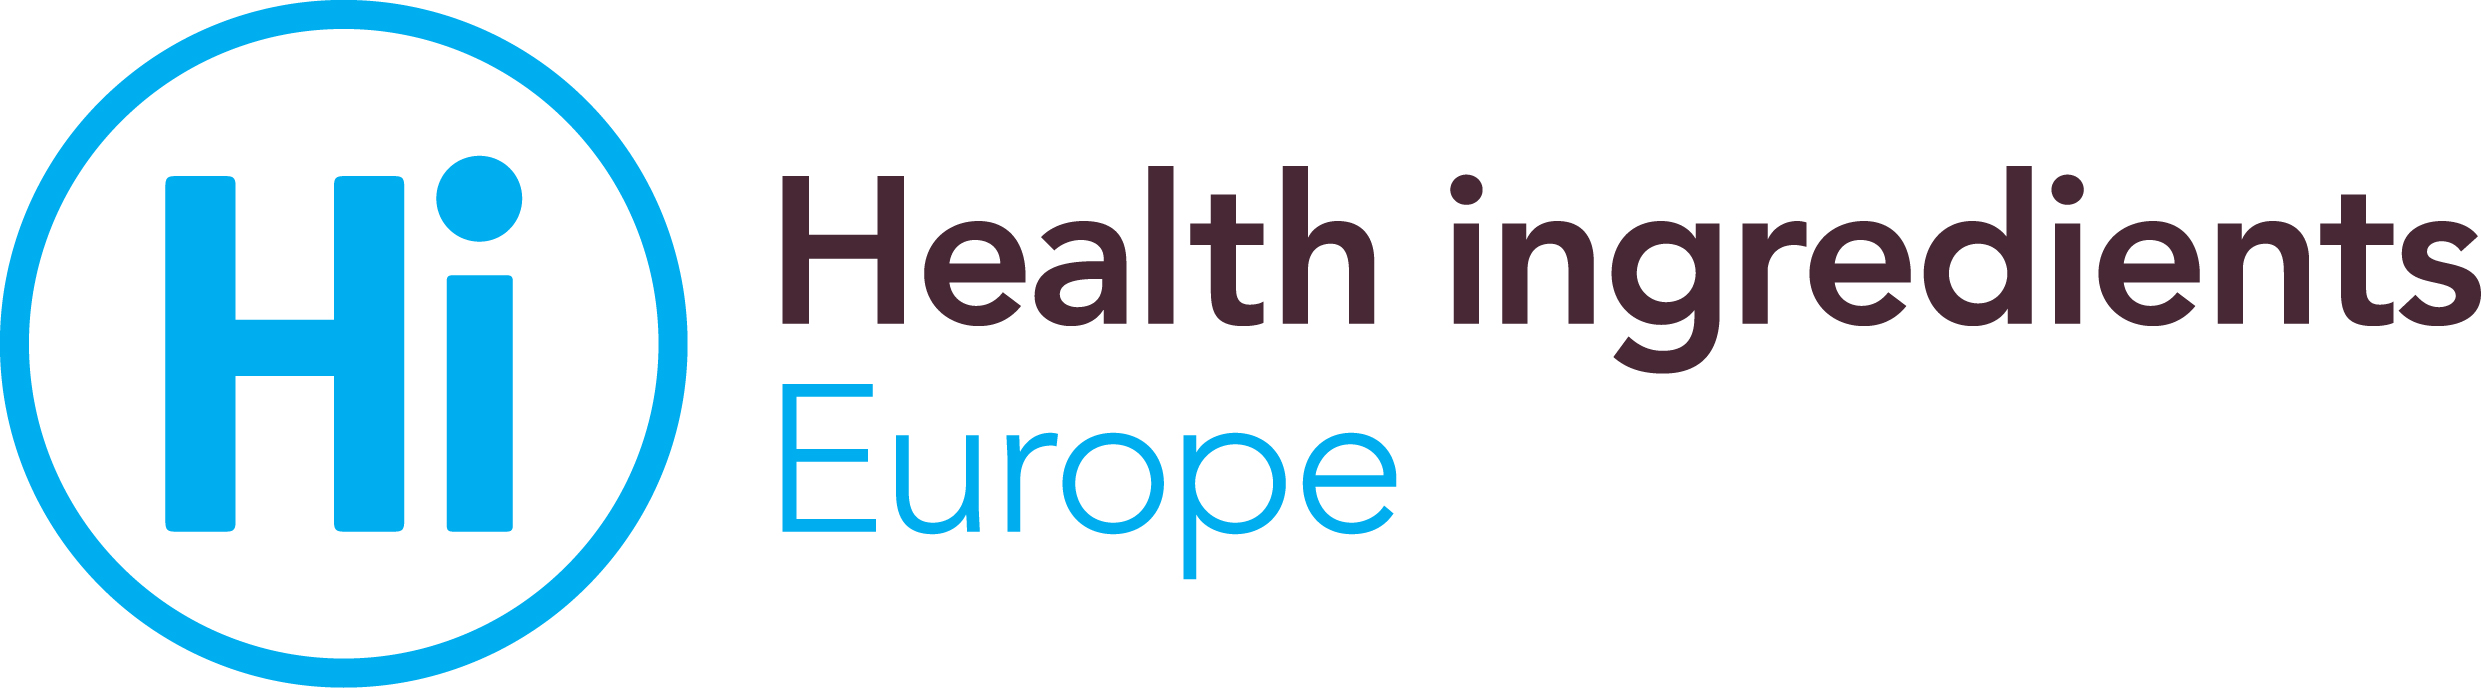 Health ingredients Europe 2018